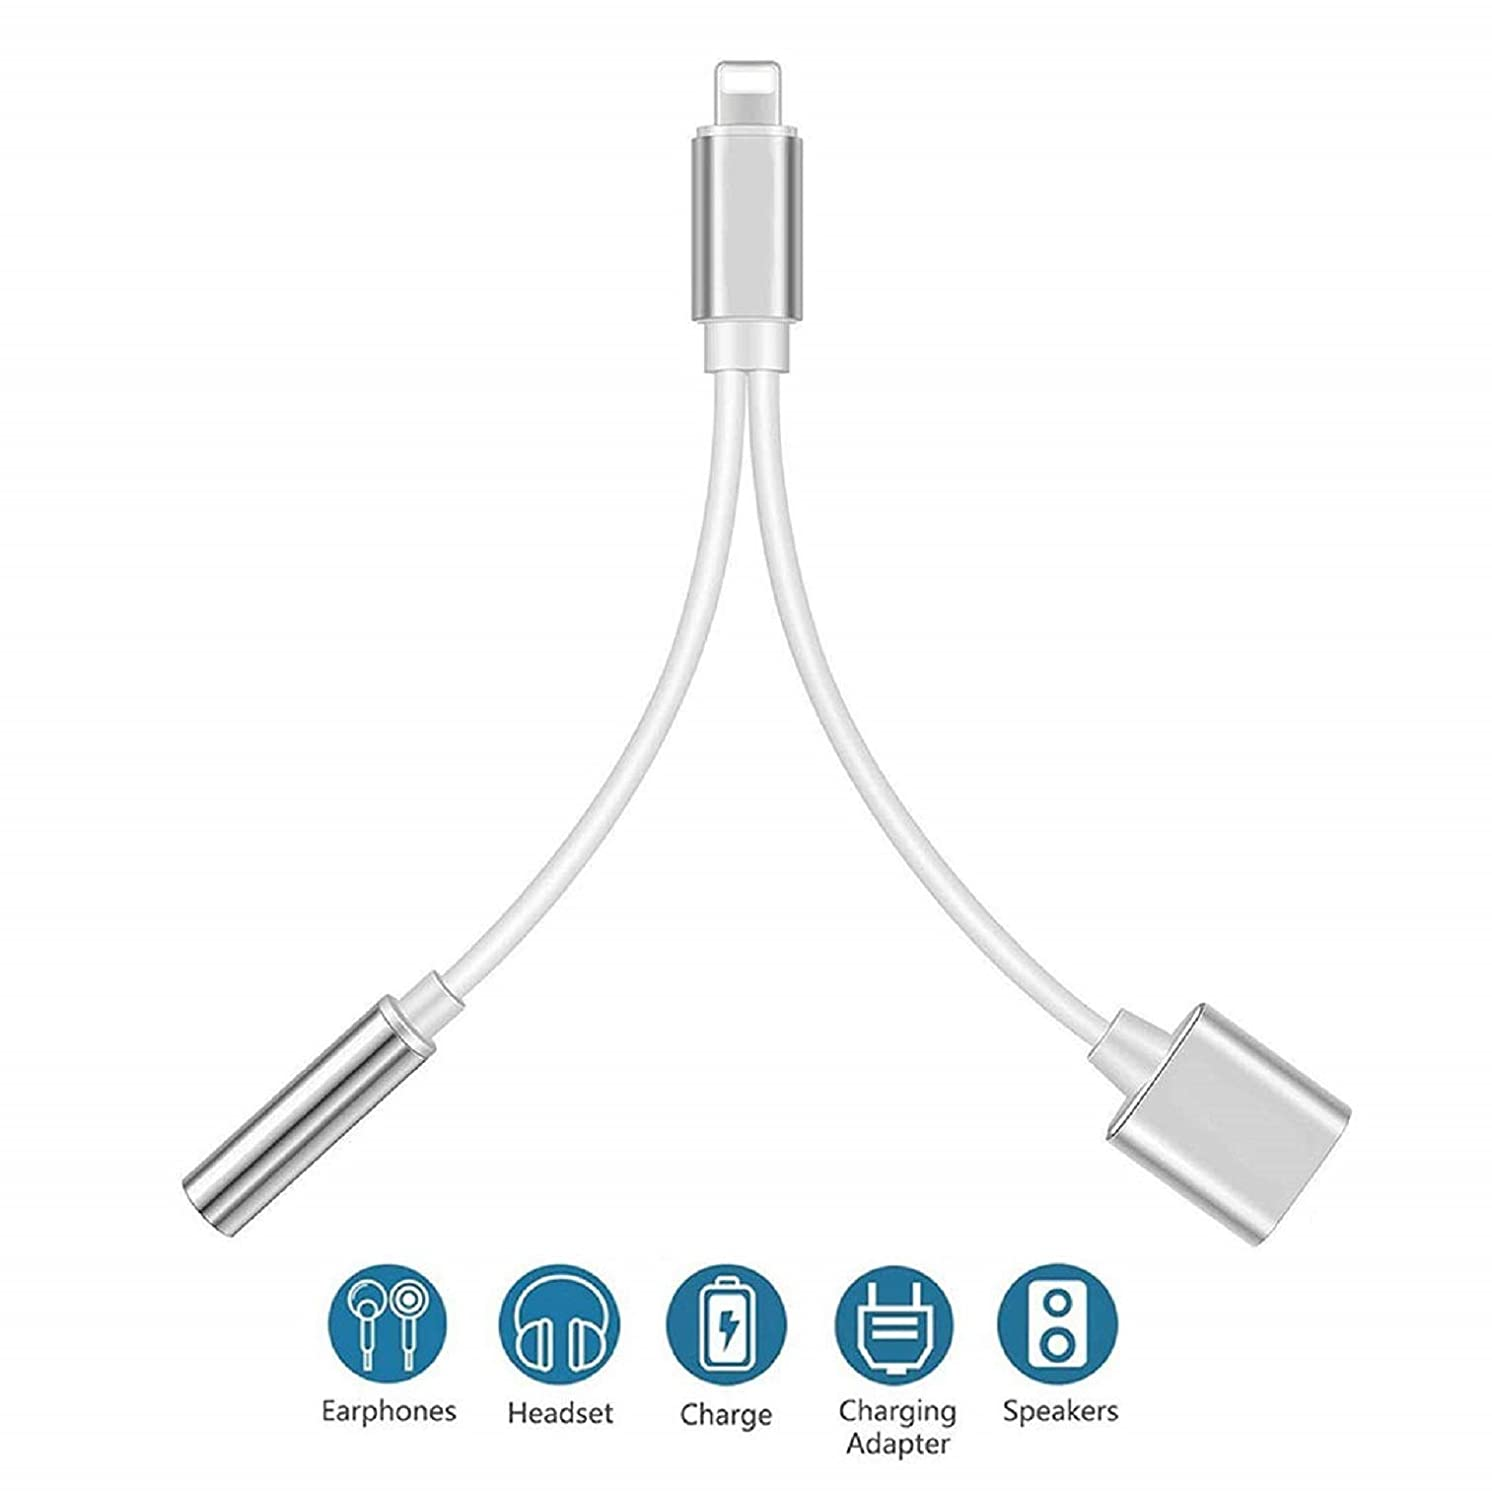 Headphone Jack Adapter Earphone Splitter Adaptor Dongle 2 in 1 Chargers & Aux Audio Connector Charger Cable Support All iOS System